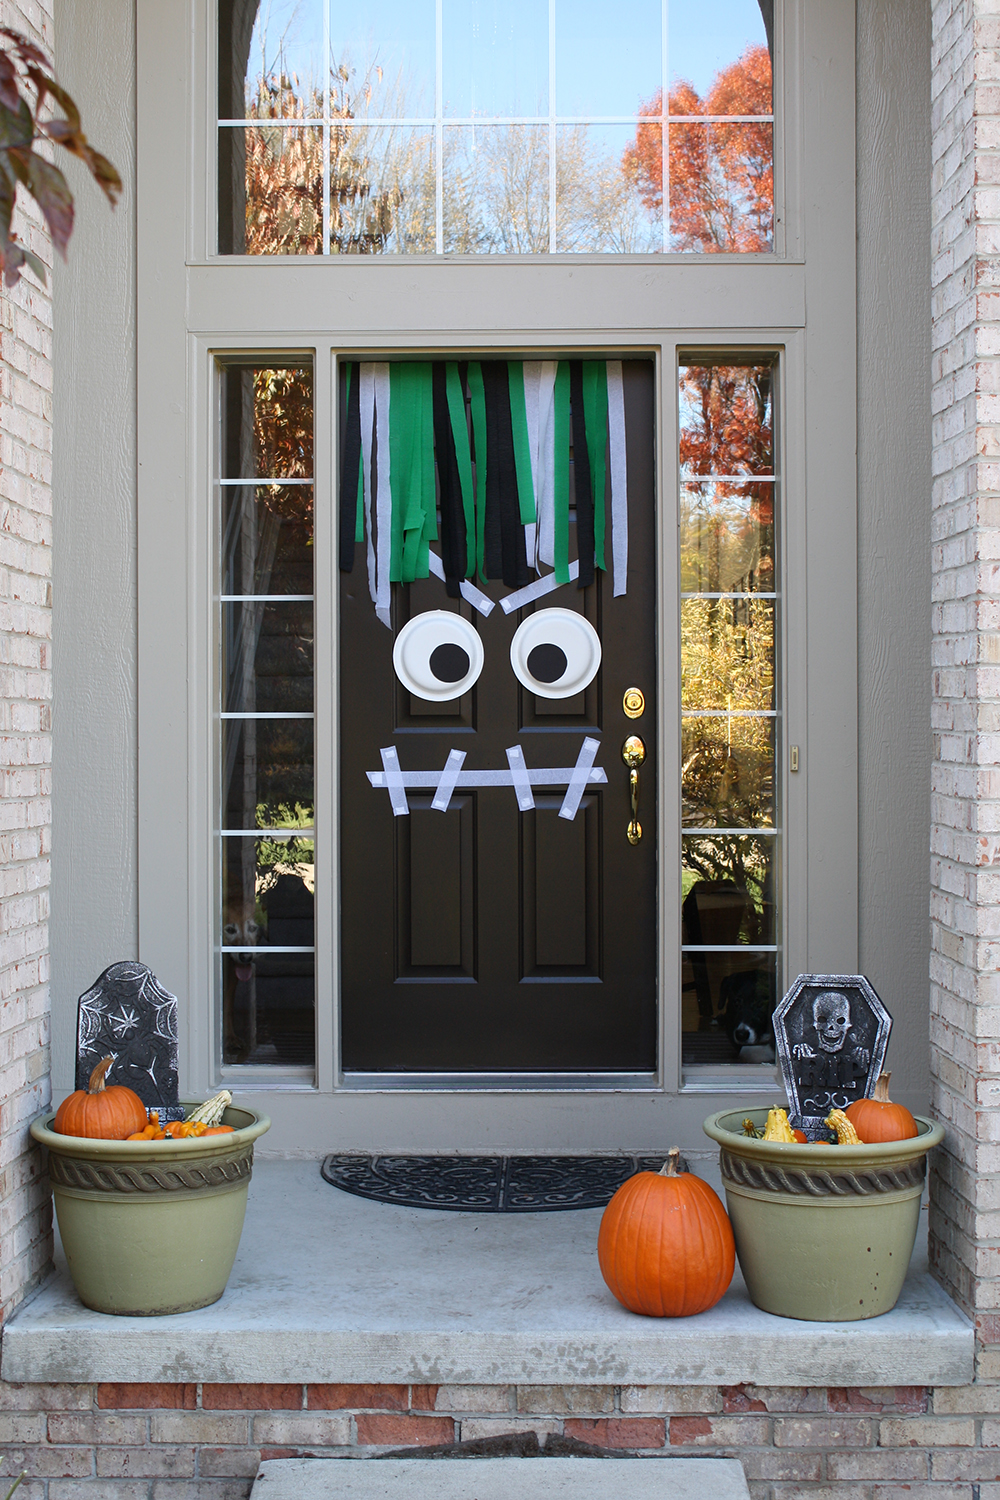 Cute halloween door decorations - Halloween Door Decoration